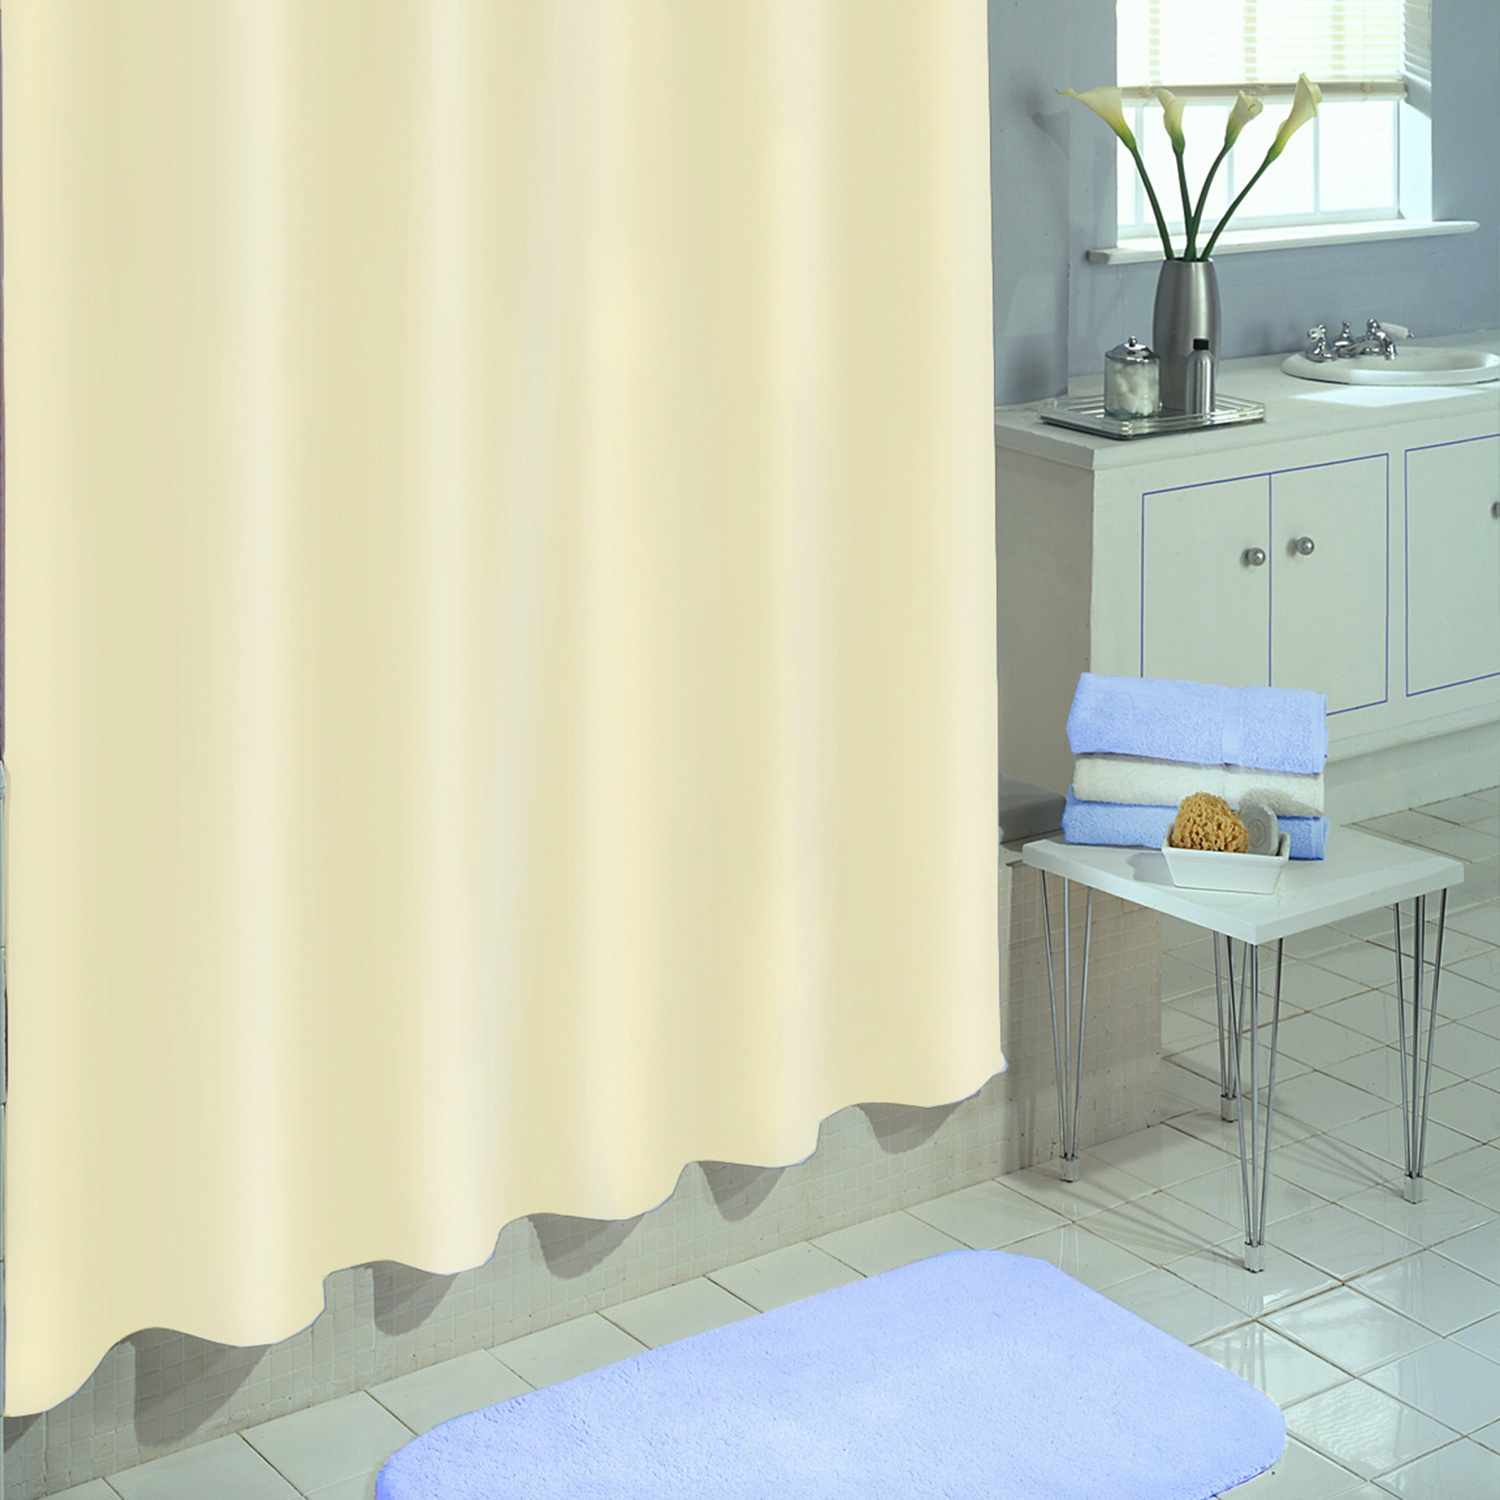 Curtain Surround Shower Curtain Clawfoot Tub Shower Curtain Within  Proportions 1500 X 1500